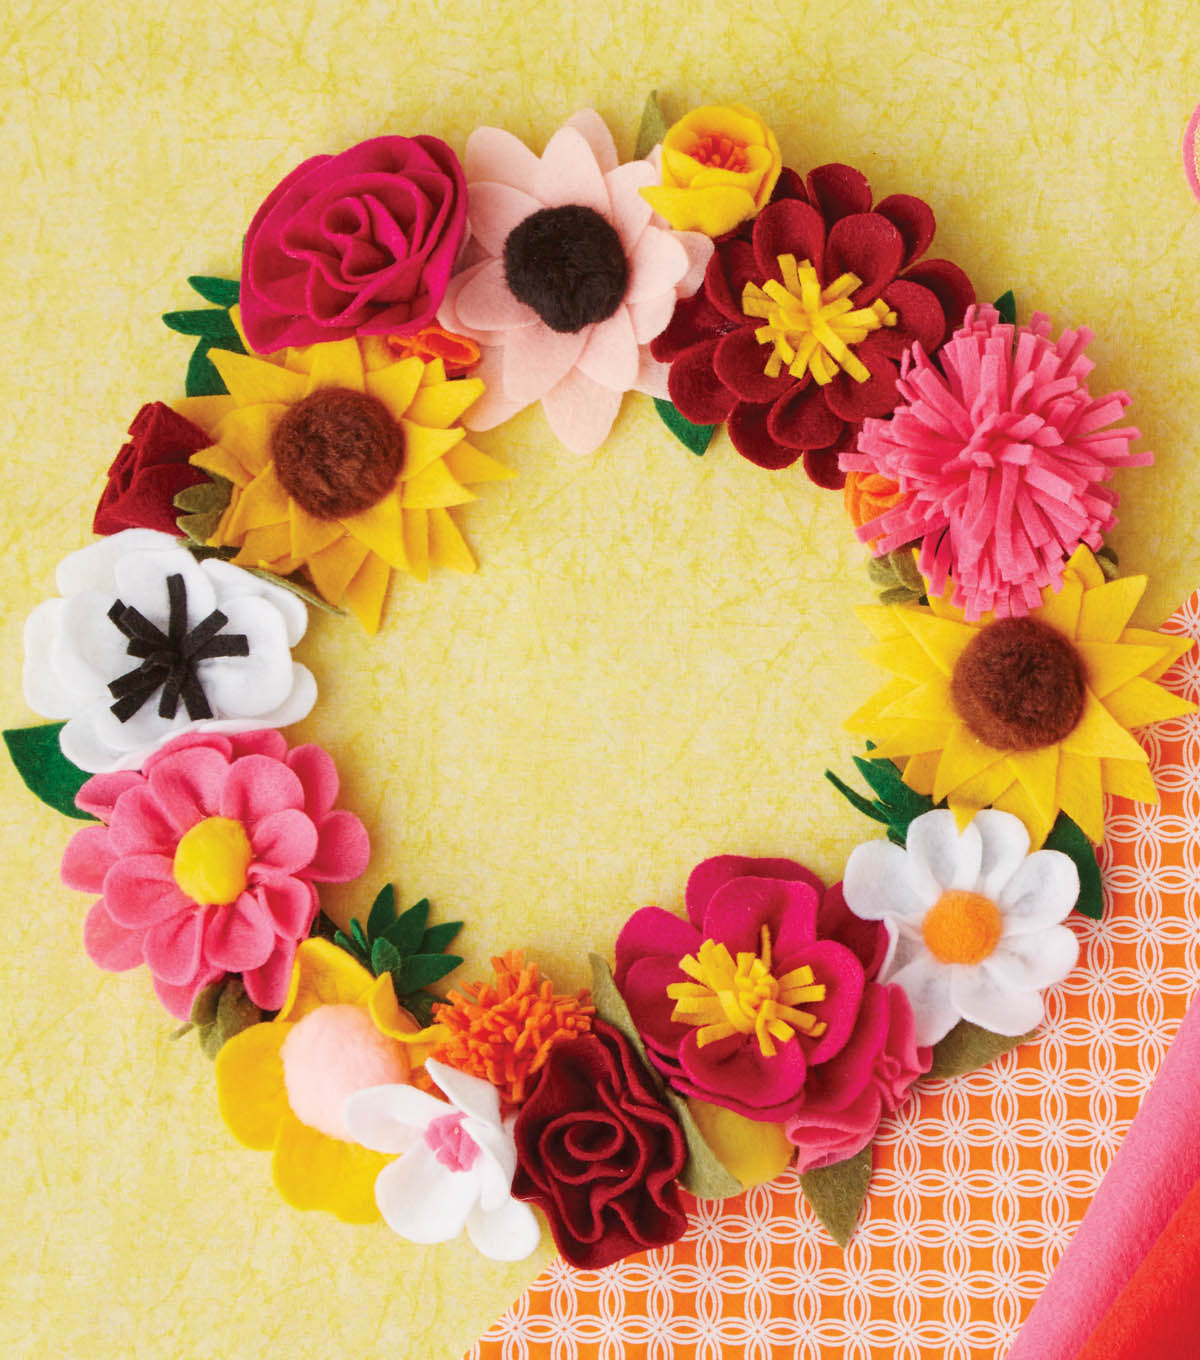 How to Make a Felted Rose Wreath